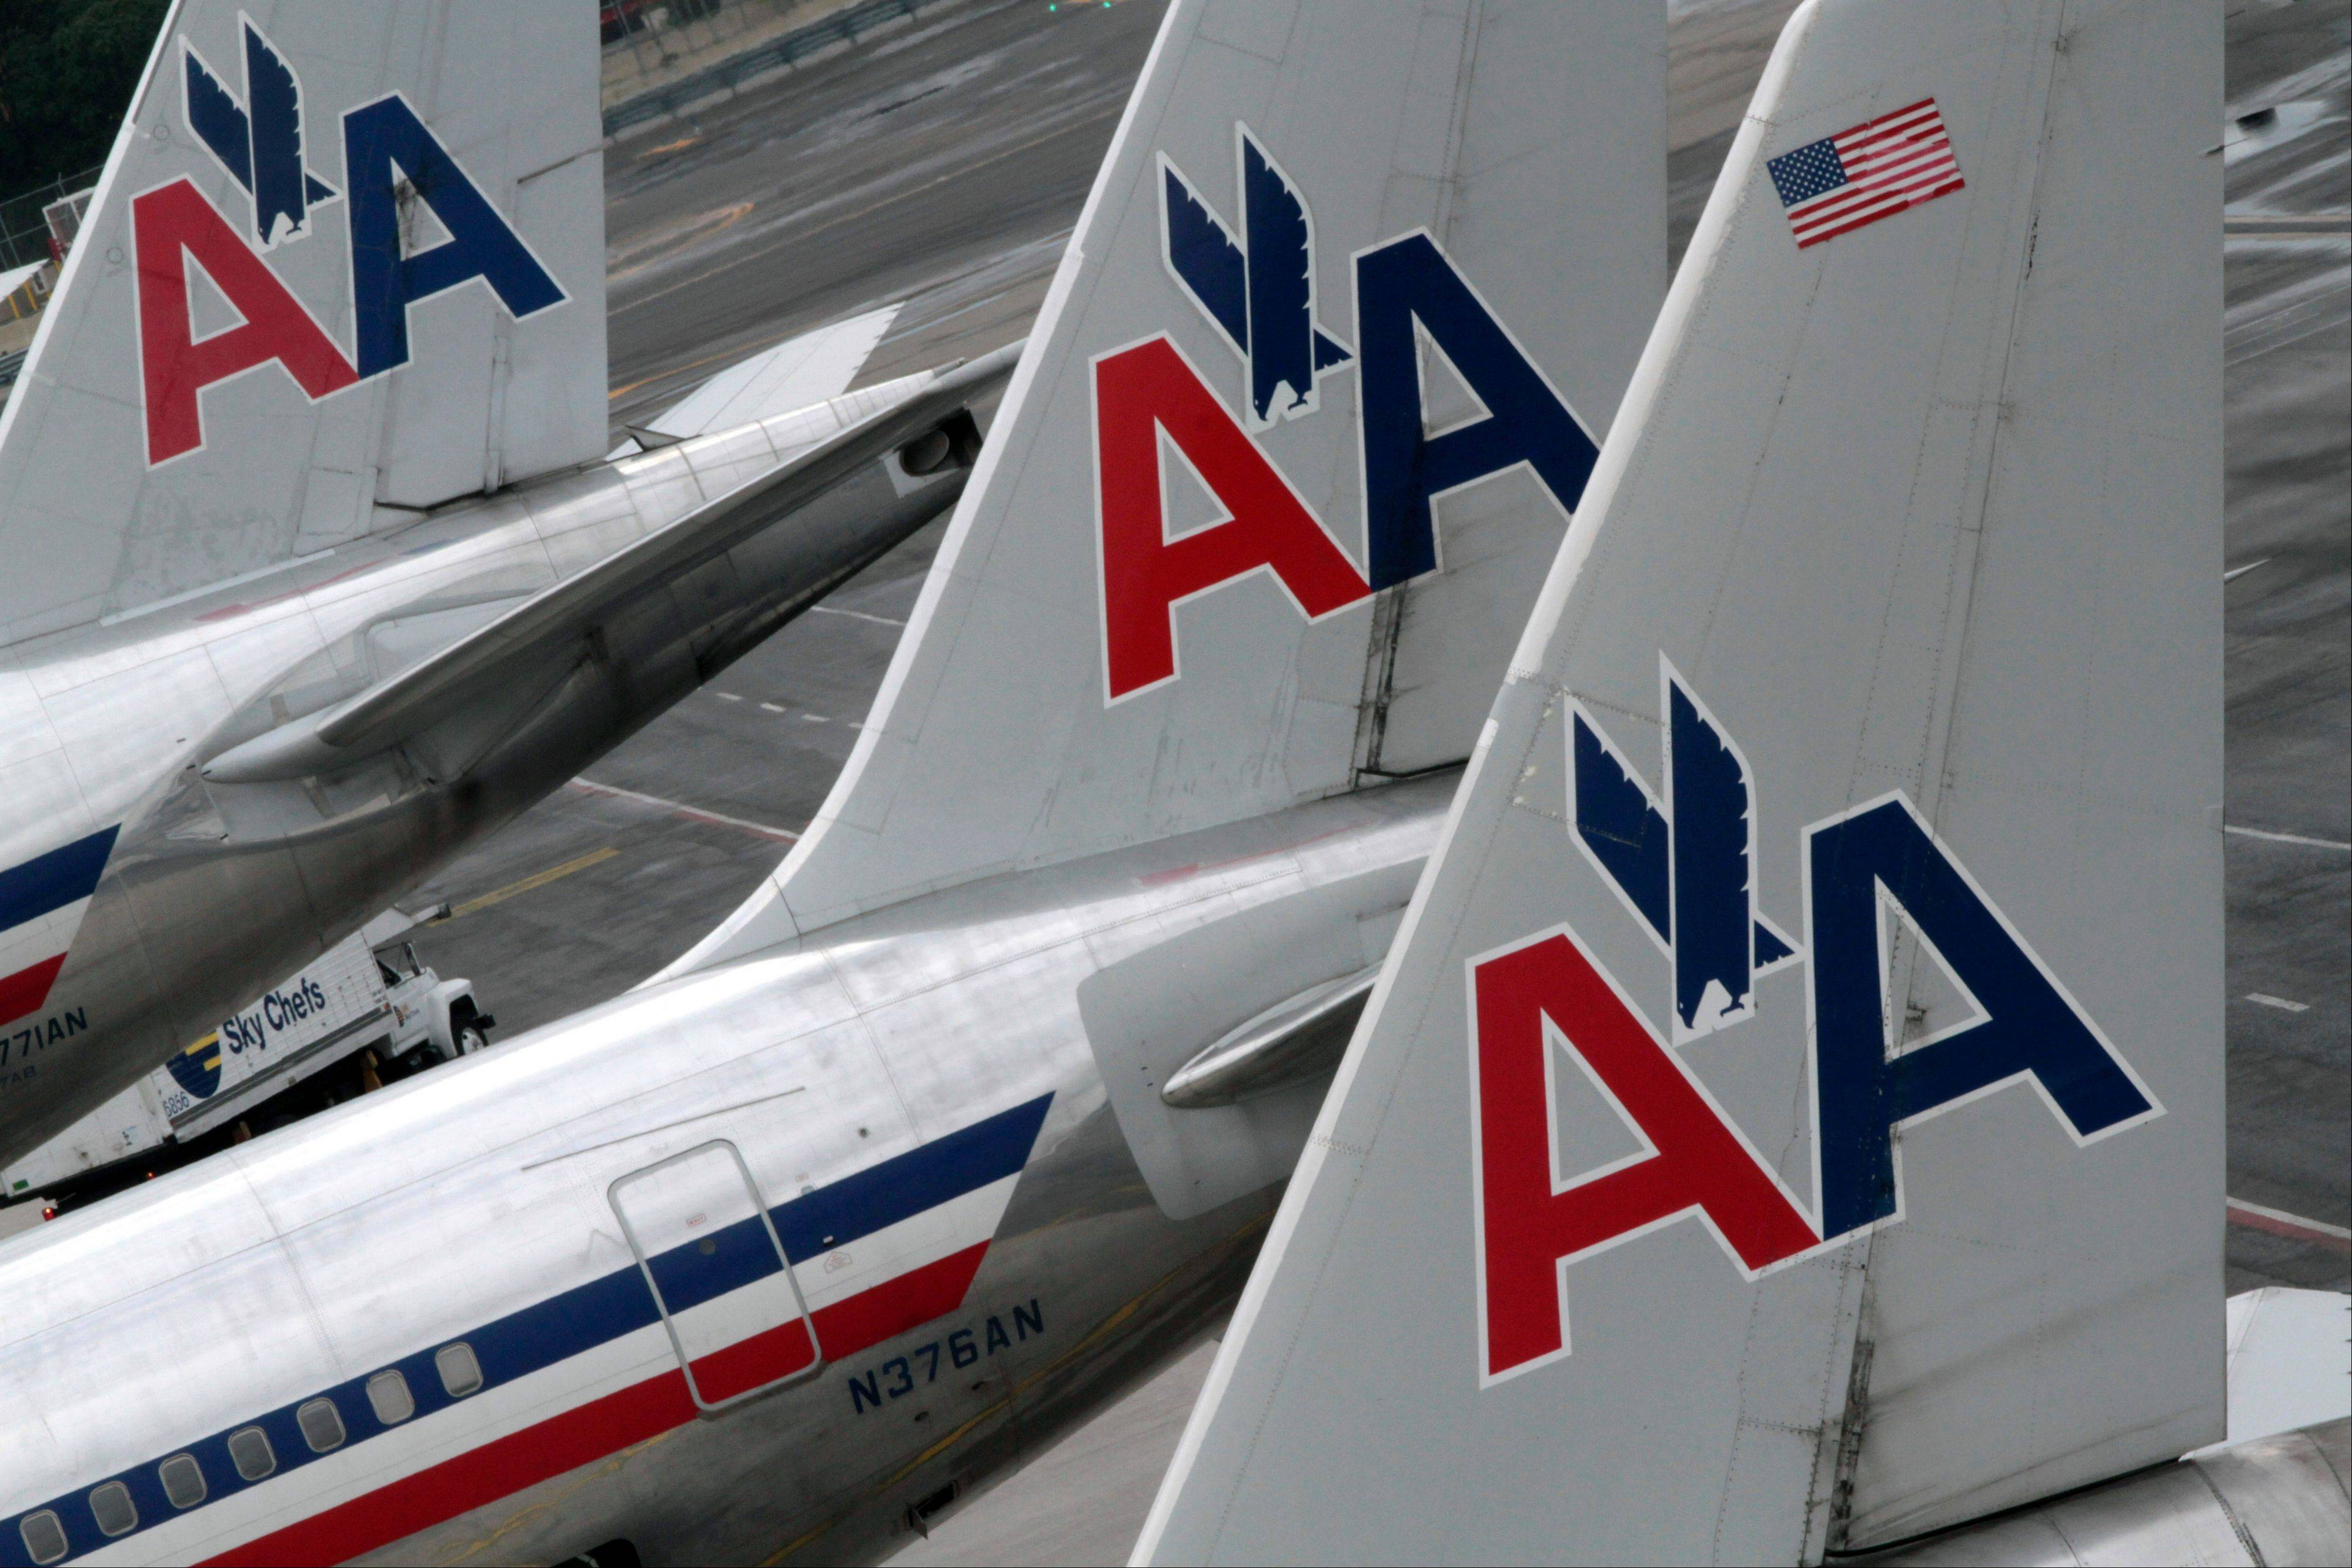 American Airlines airplanes are at parked at the gate at JFK International airport in New York.